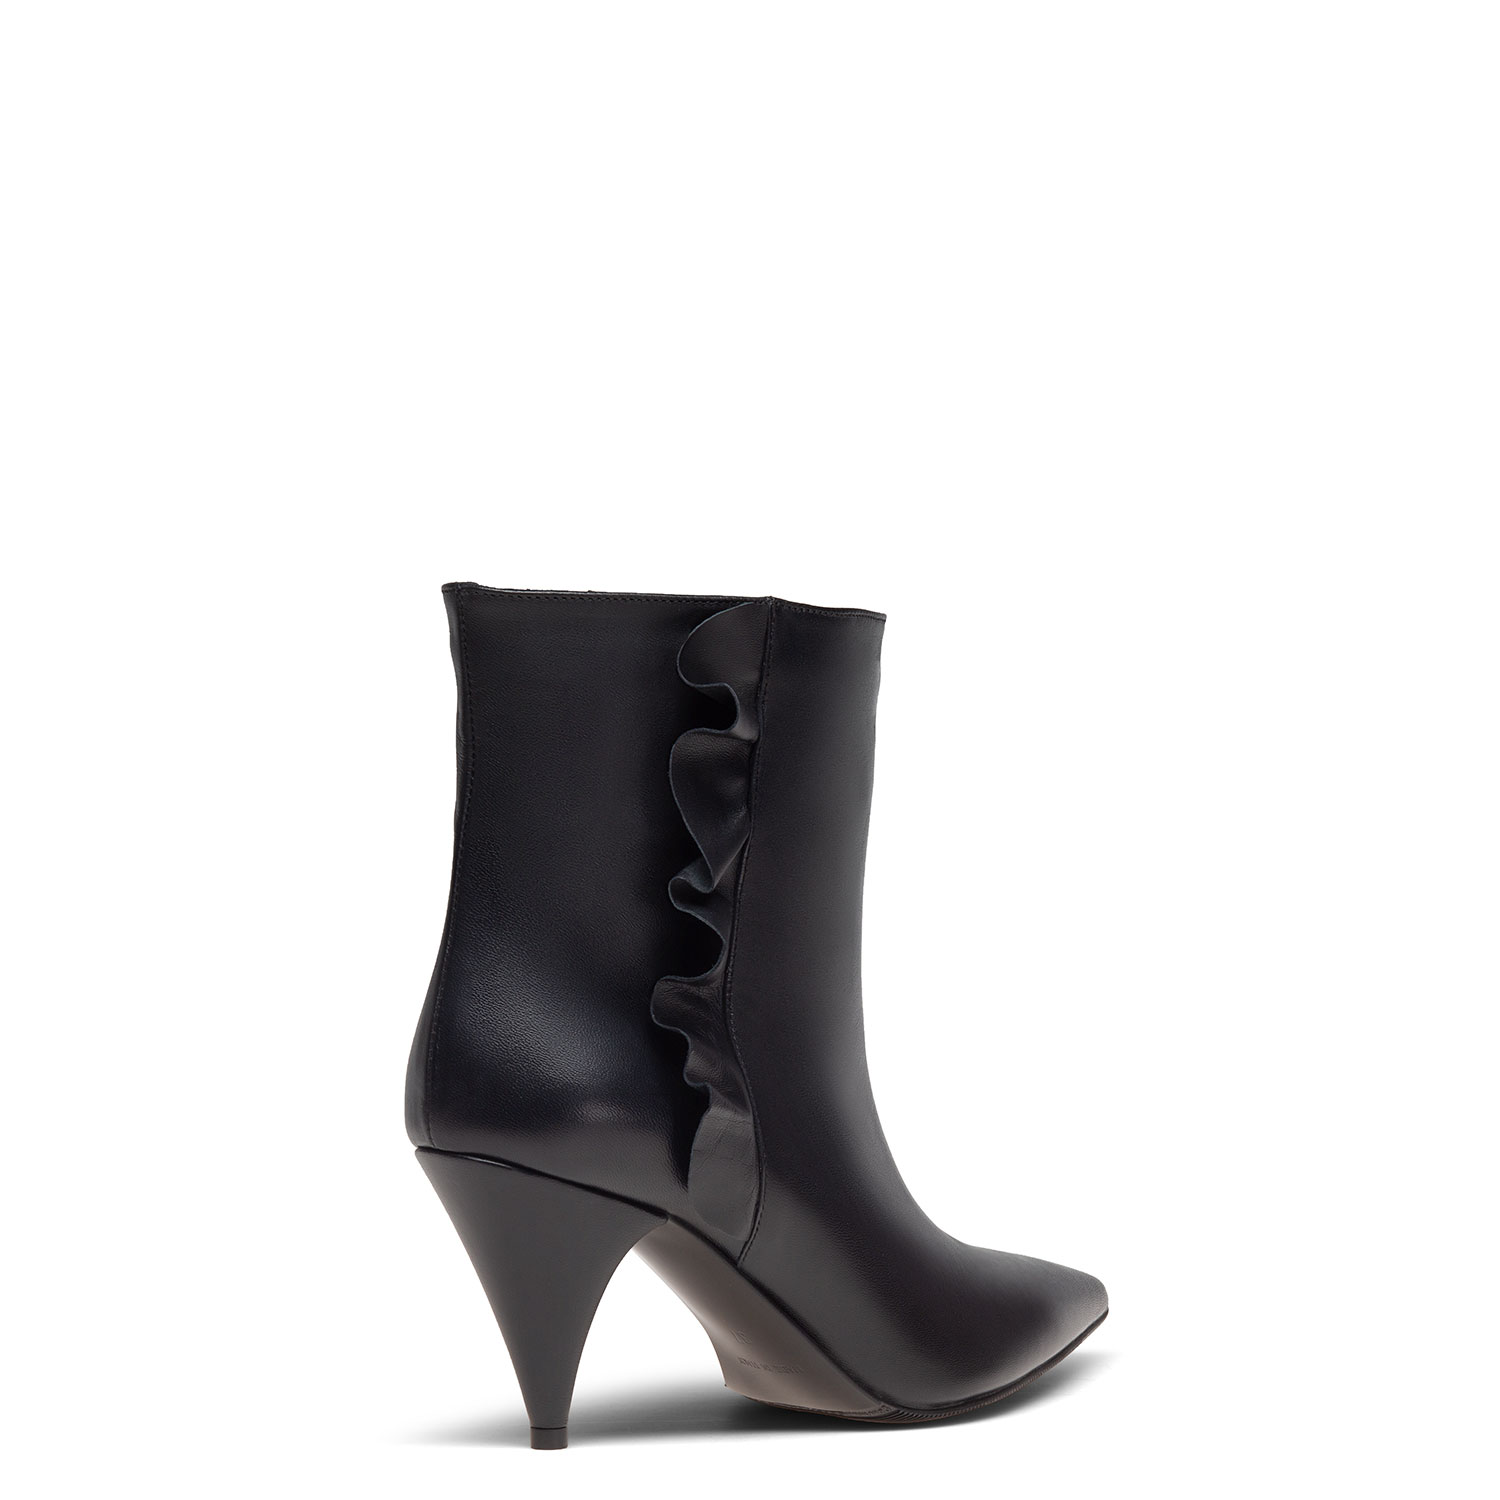 Women's ankle boots PAZOLINI CL-NEO1-1